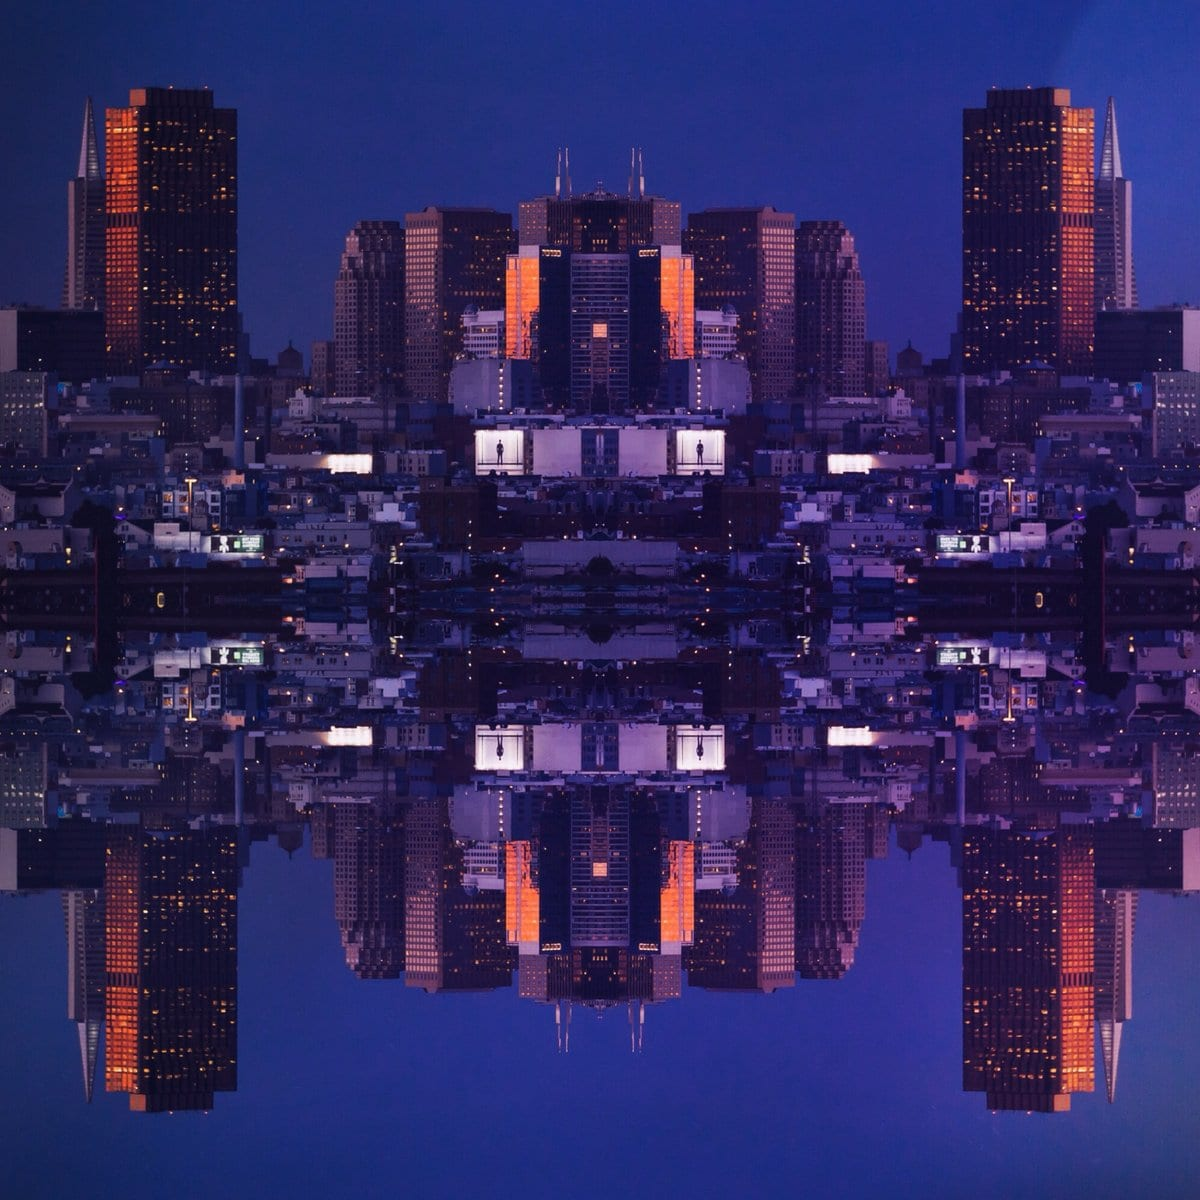 DigitalAnthill_Mirrored00021